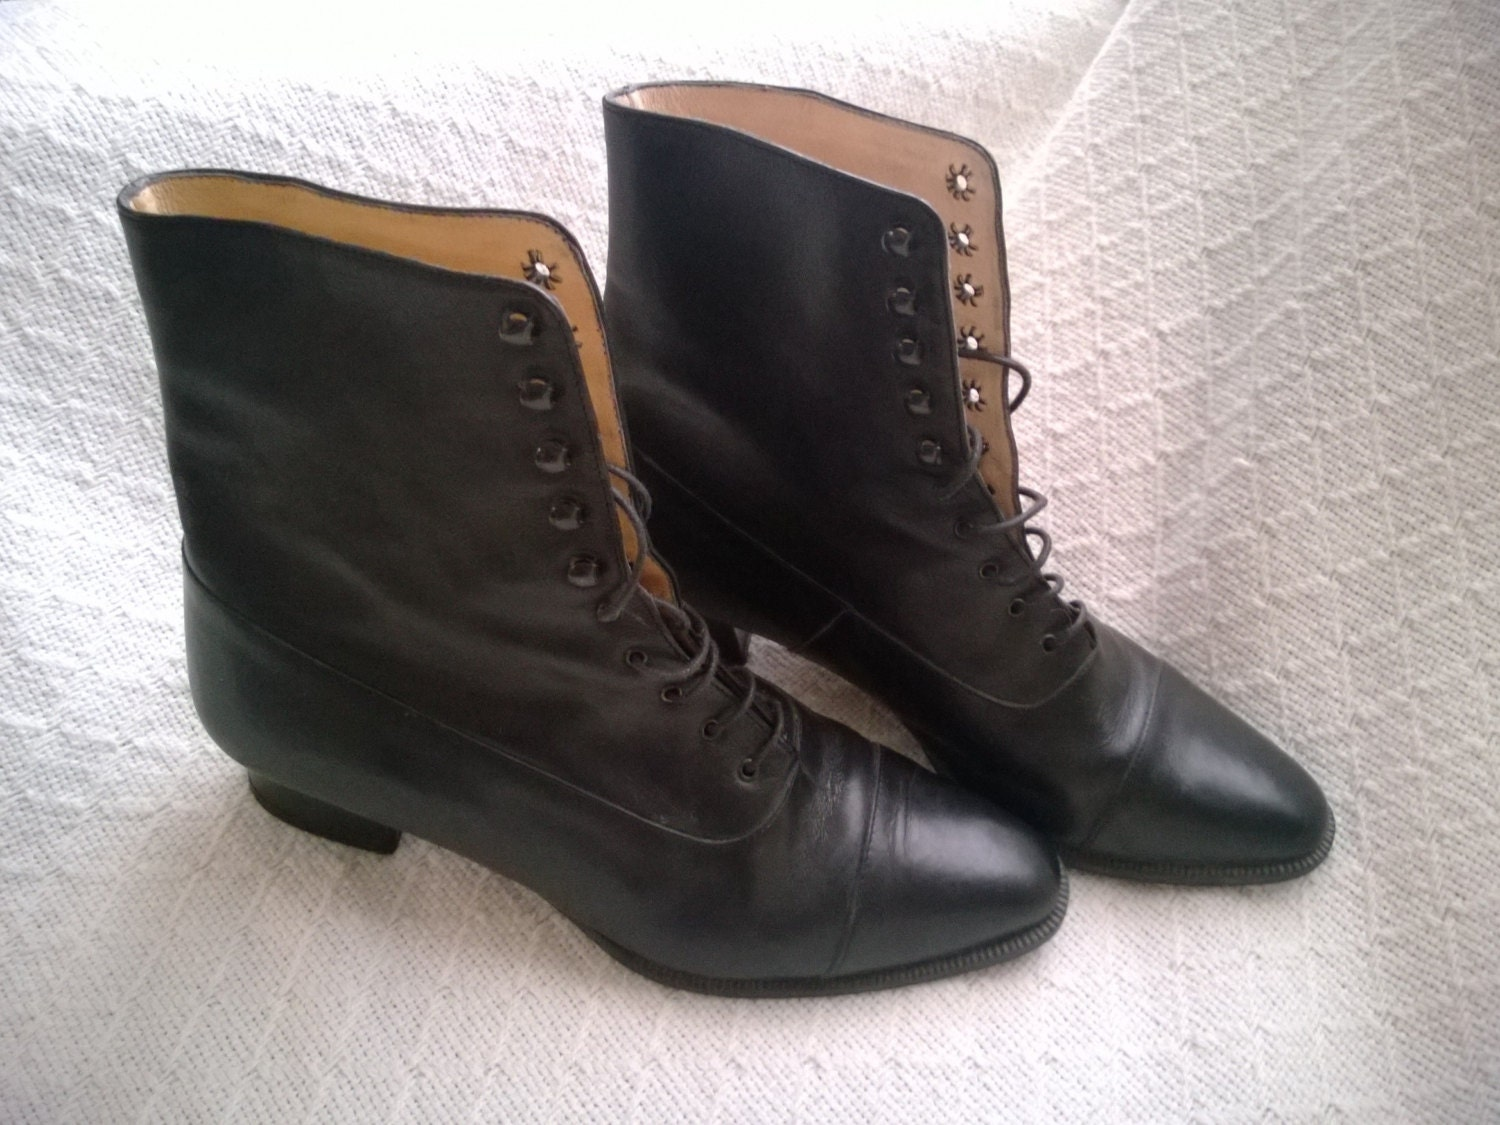 Seeking black lace-up ankle boots that are stylish but ultra